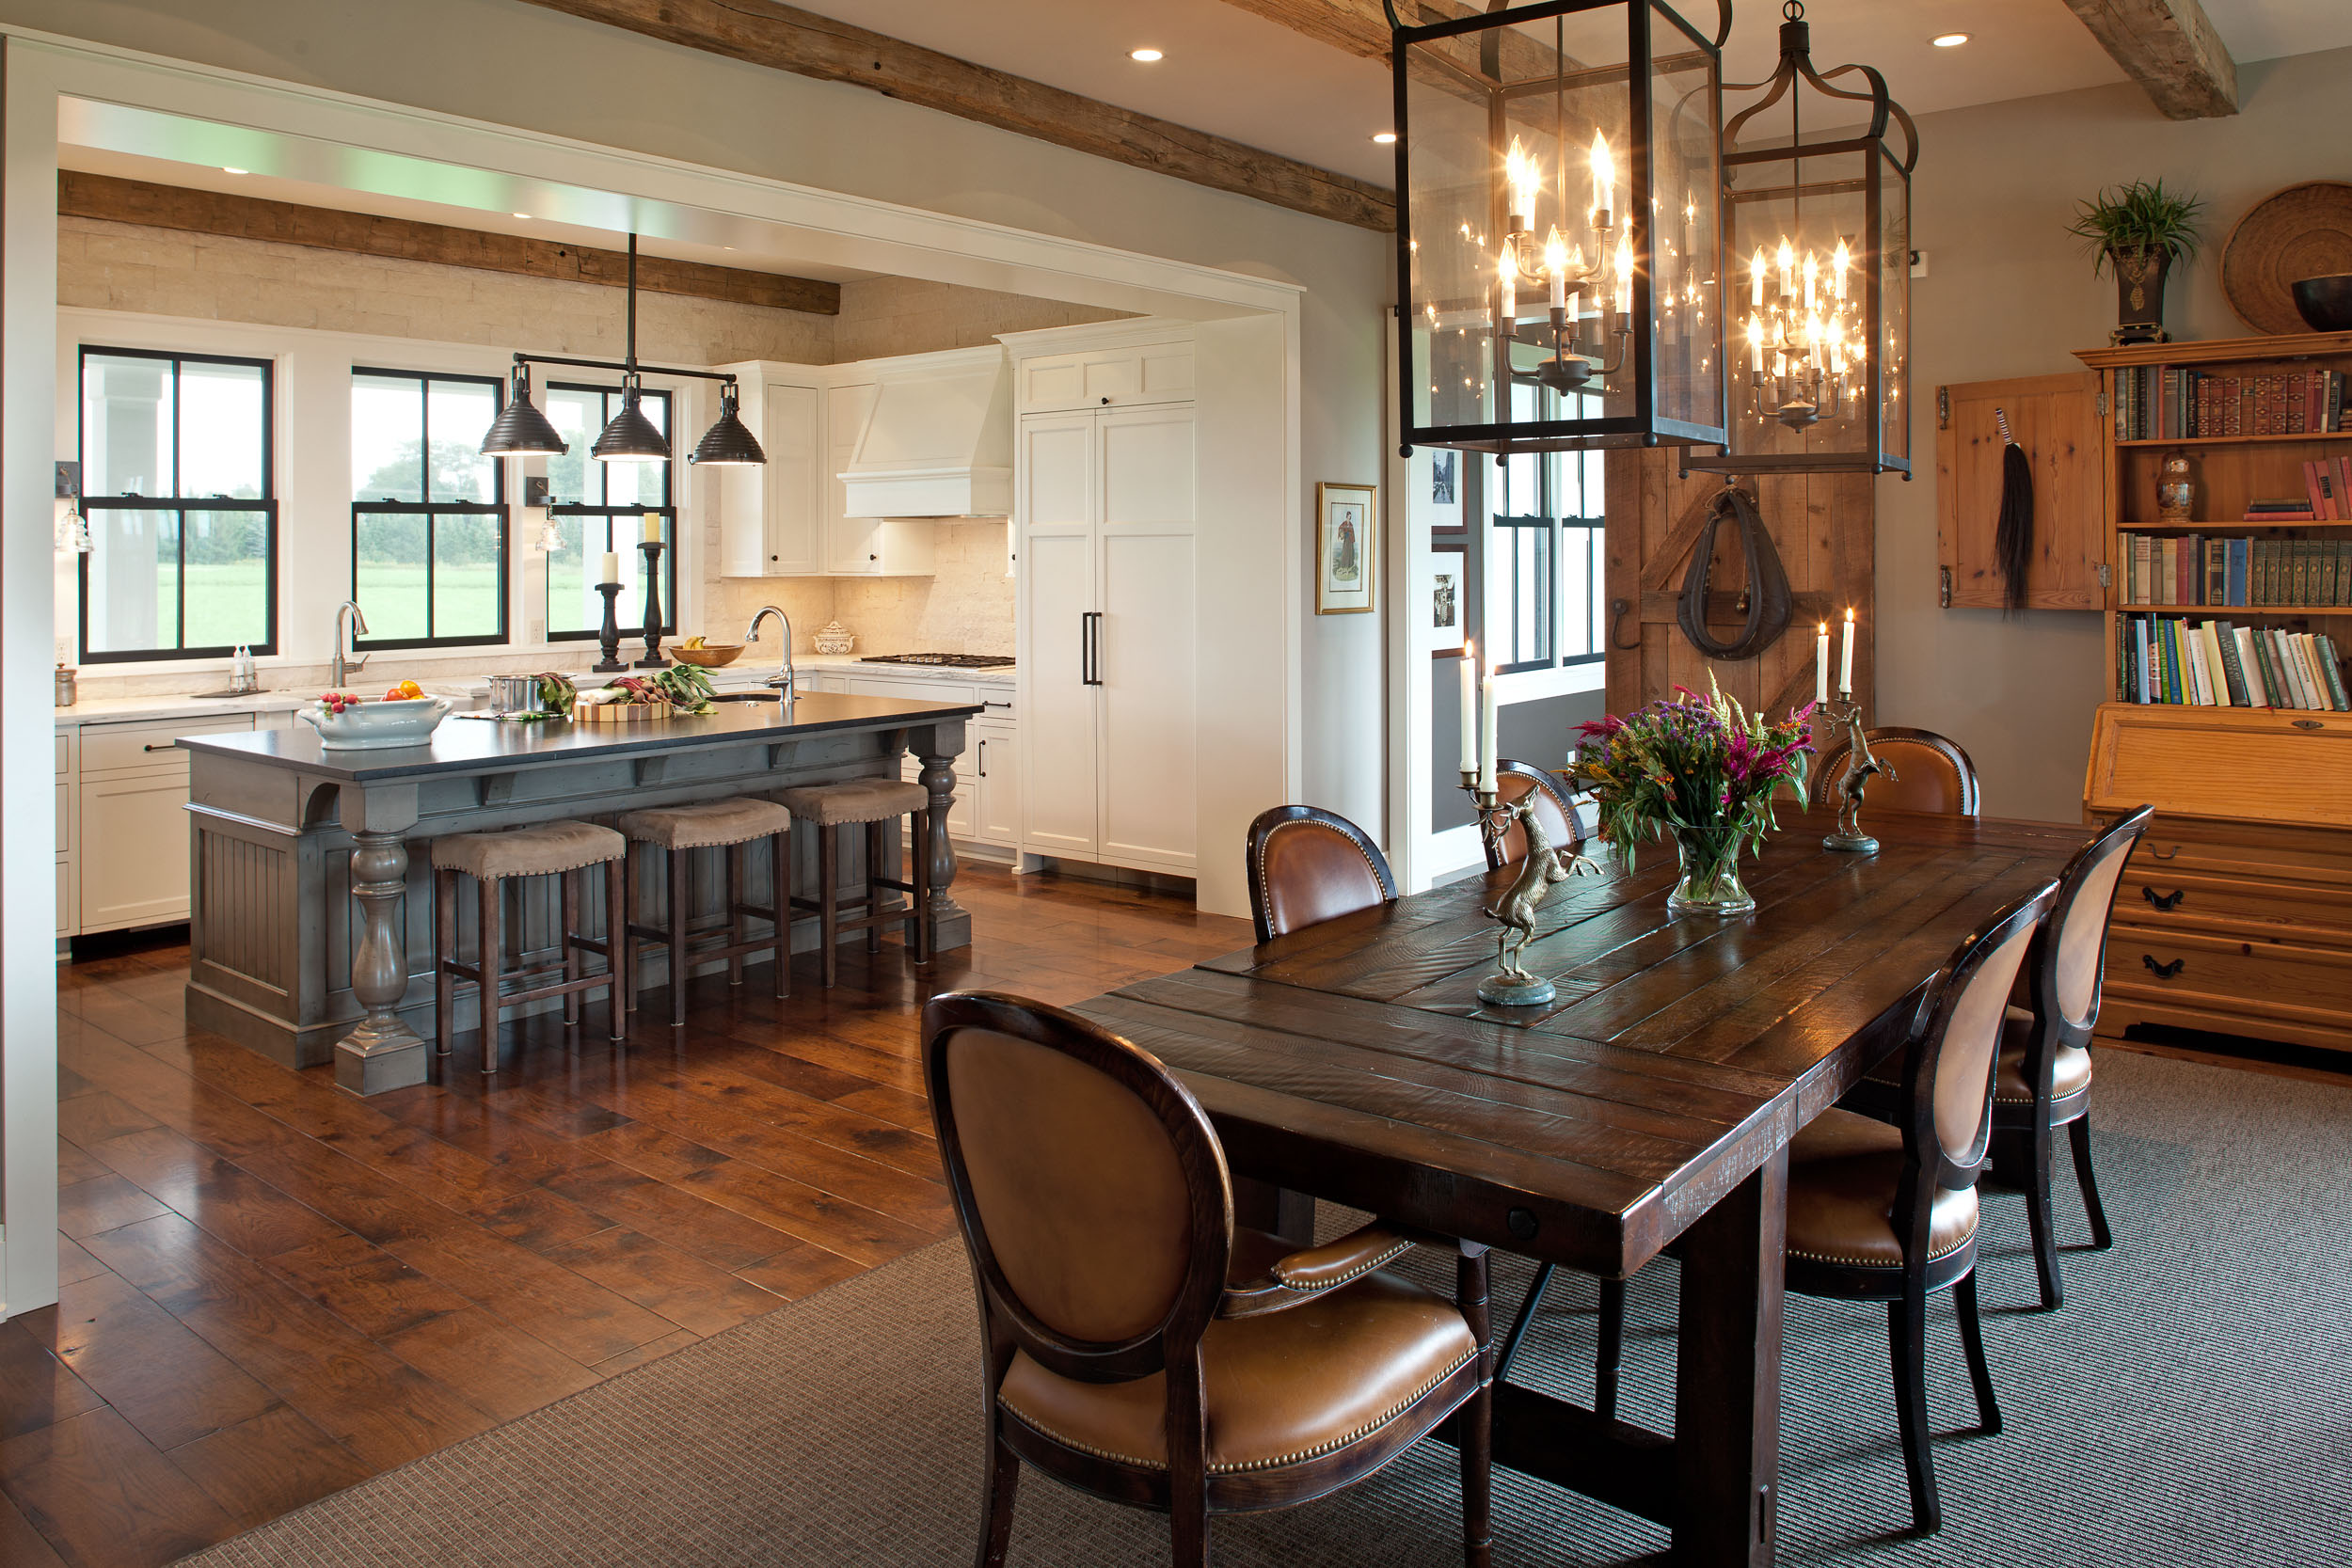 Modern Farmhouse Kitchen and Dining